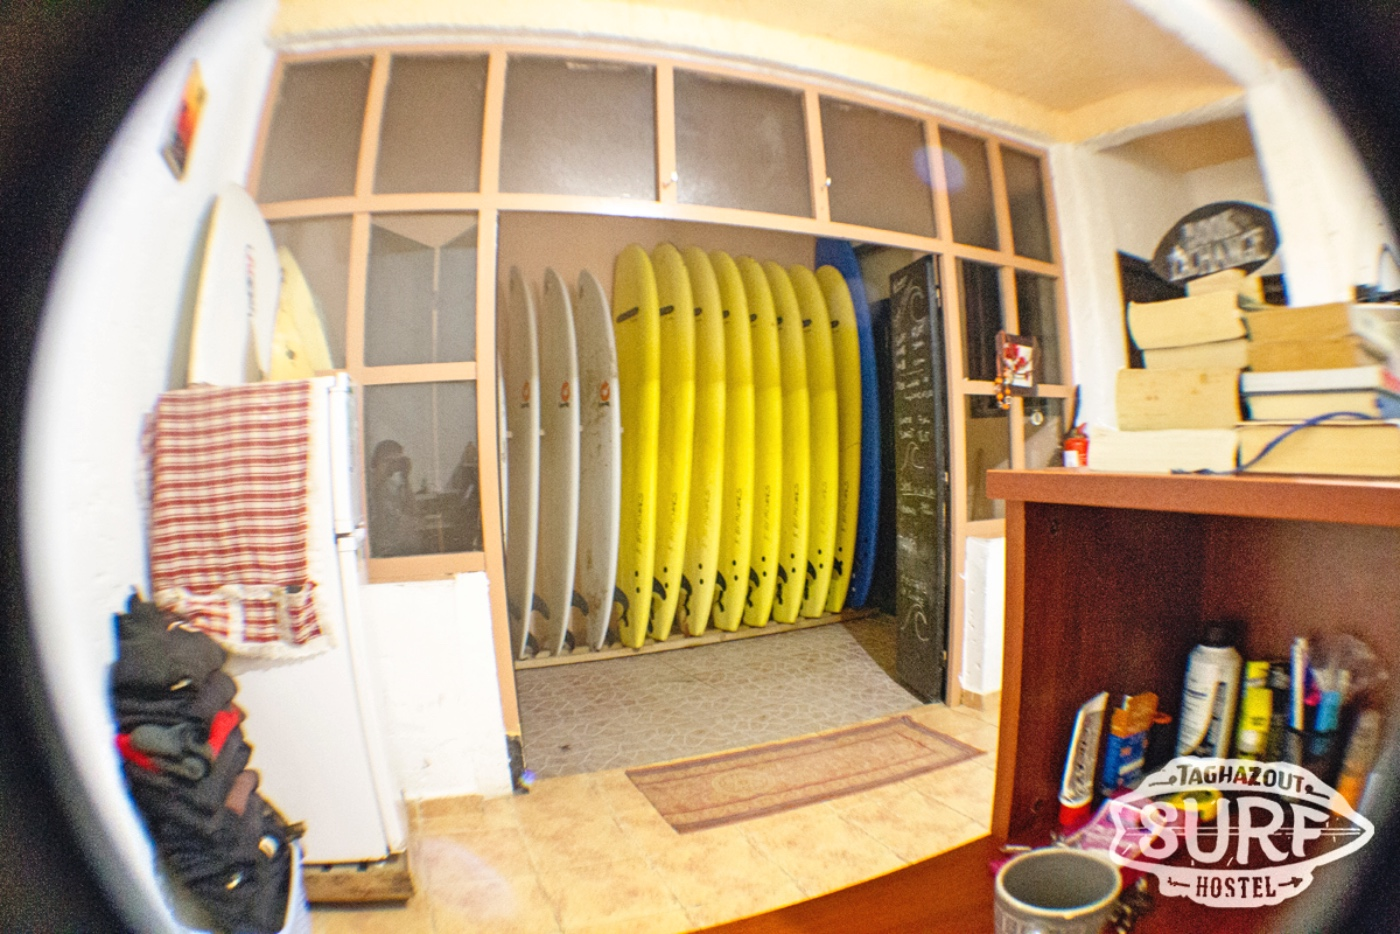 Taghazout surf hostel